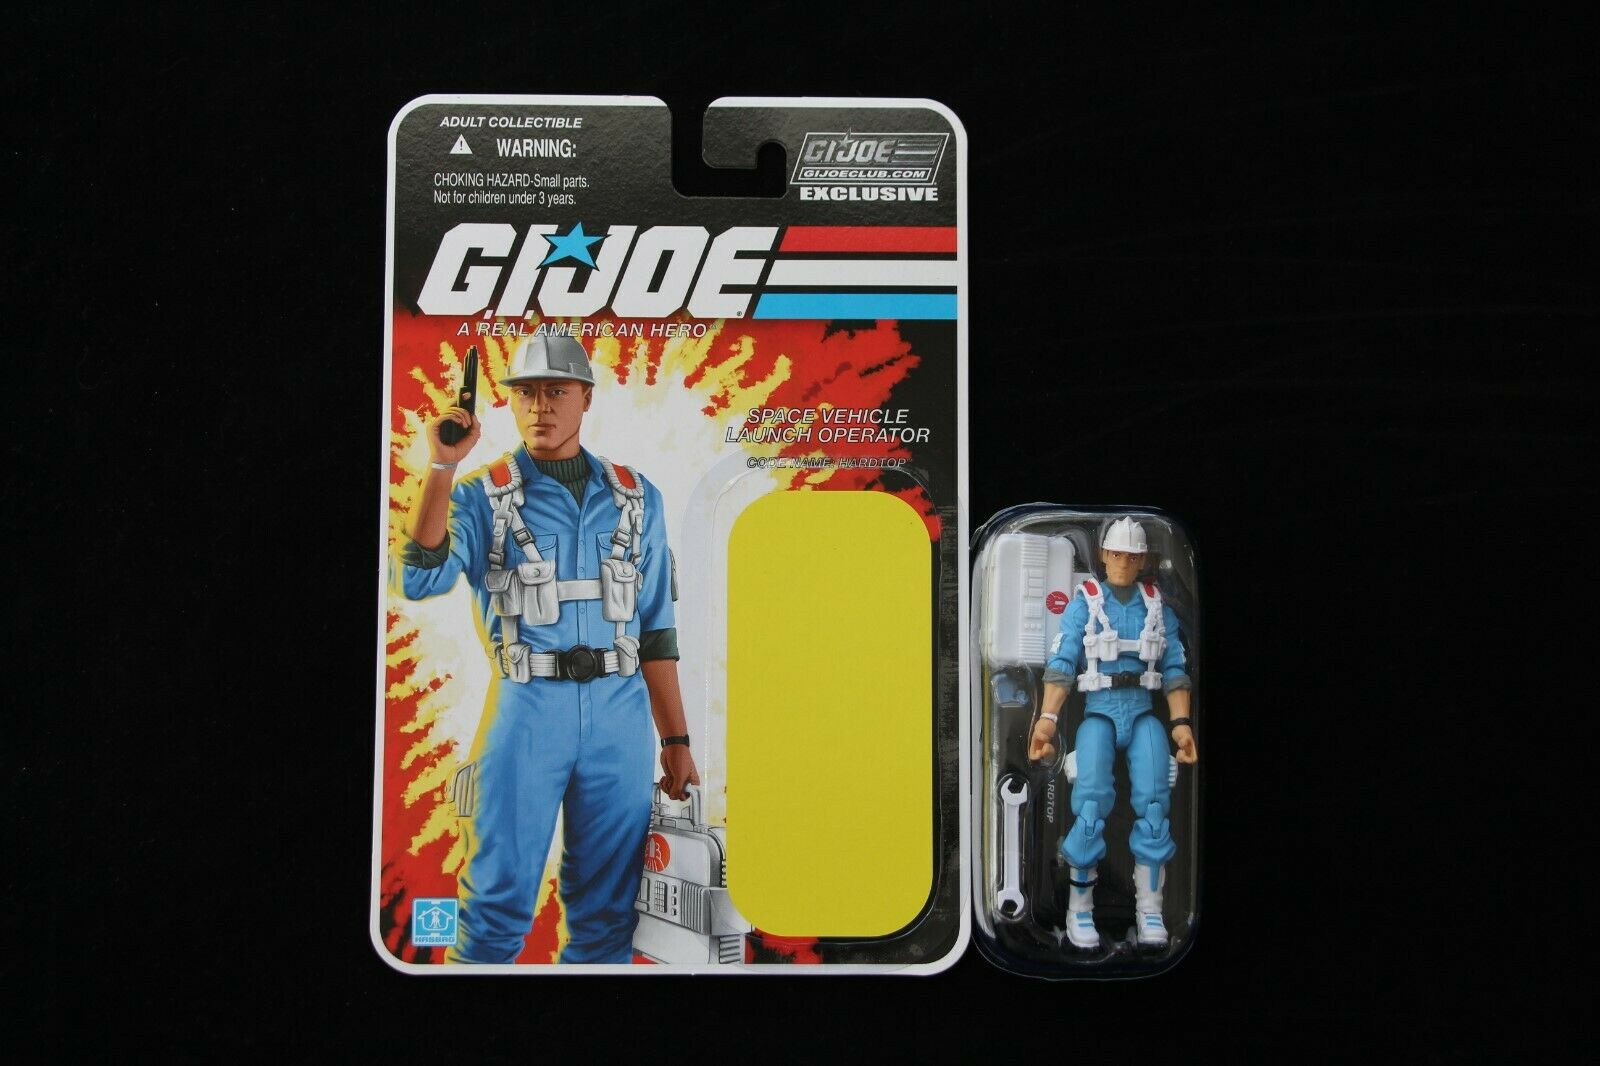 GI Joe 2017 Collector's Club FSS FSS FSS 6.0 Space Operator Hardtop Figure New Complete 46a986